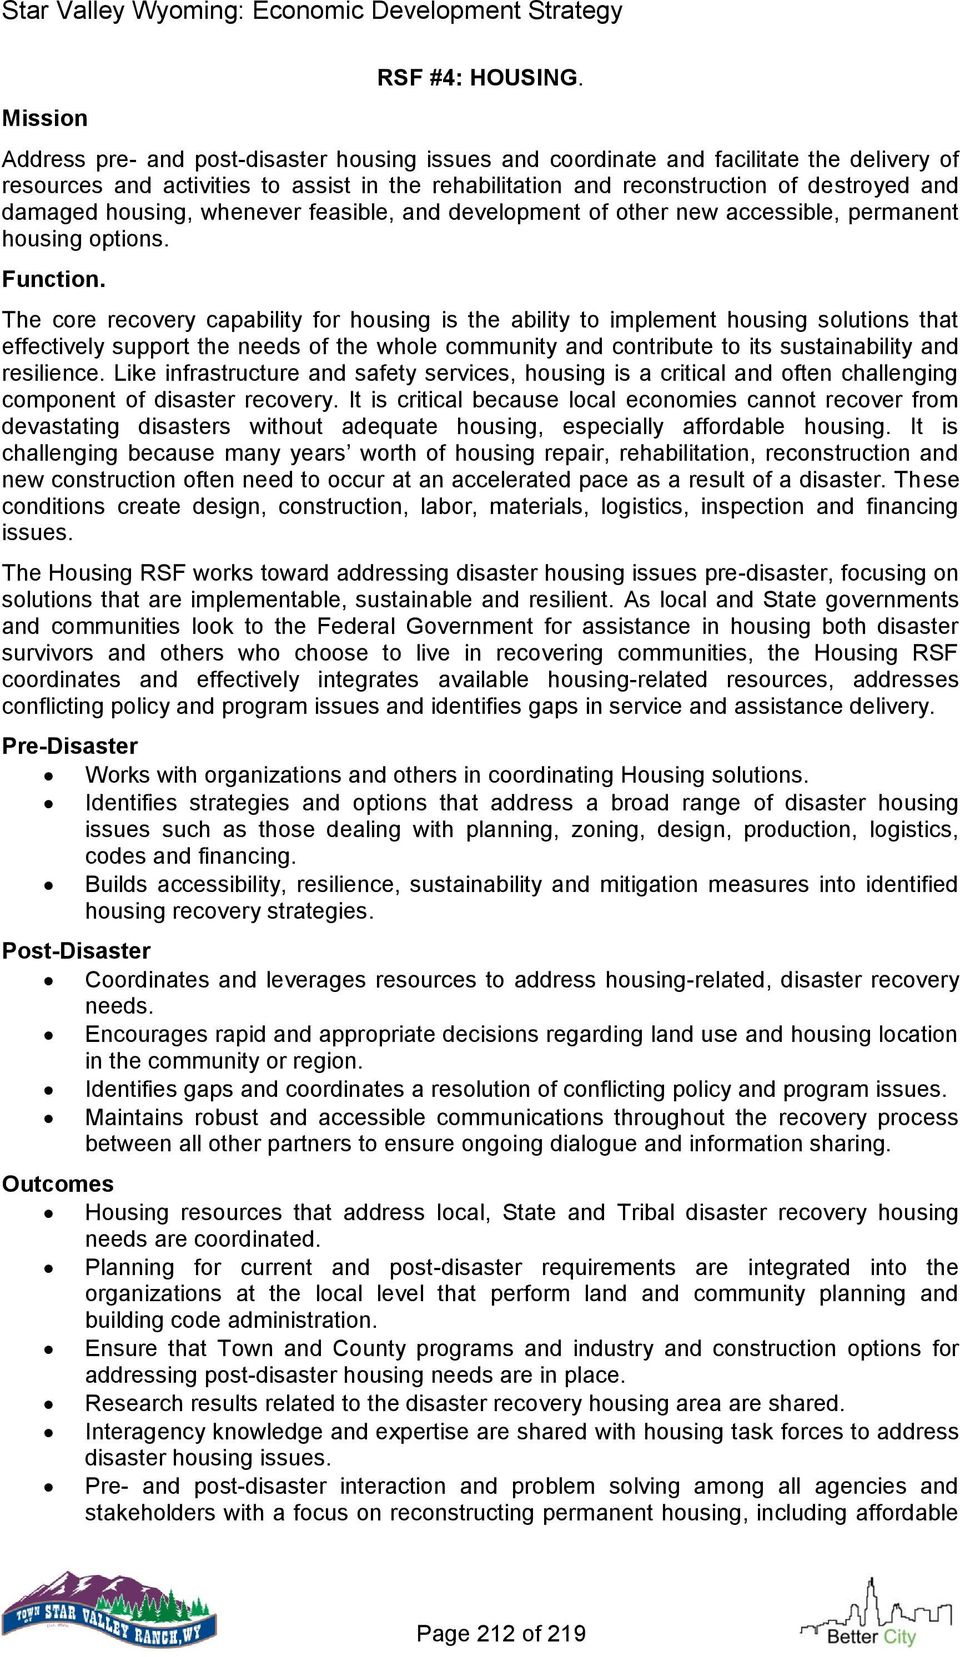 housing, whenever feasible, and development of other new accessible, permanent housing options. Function.